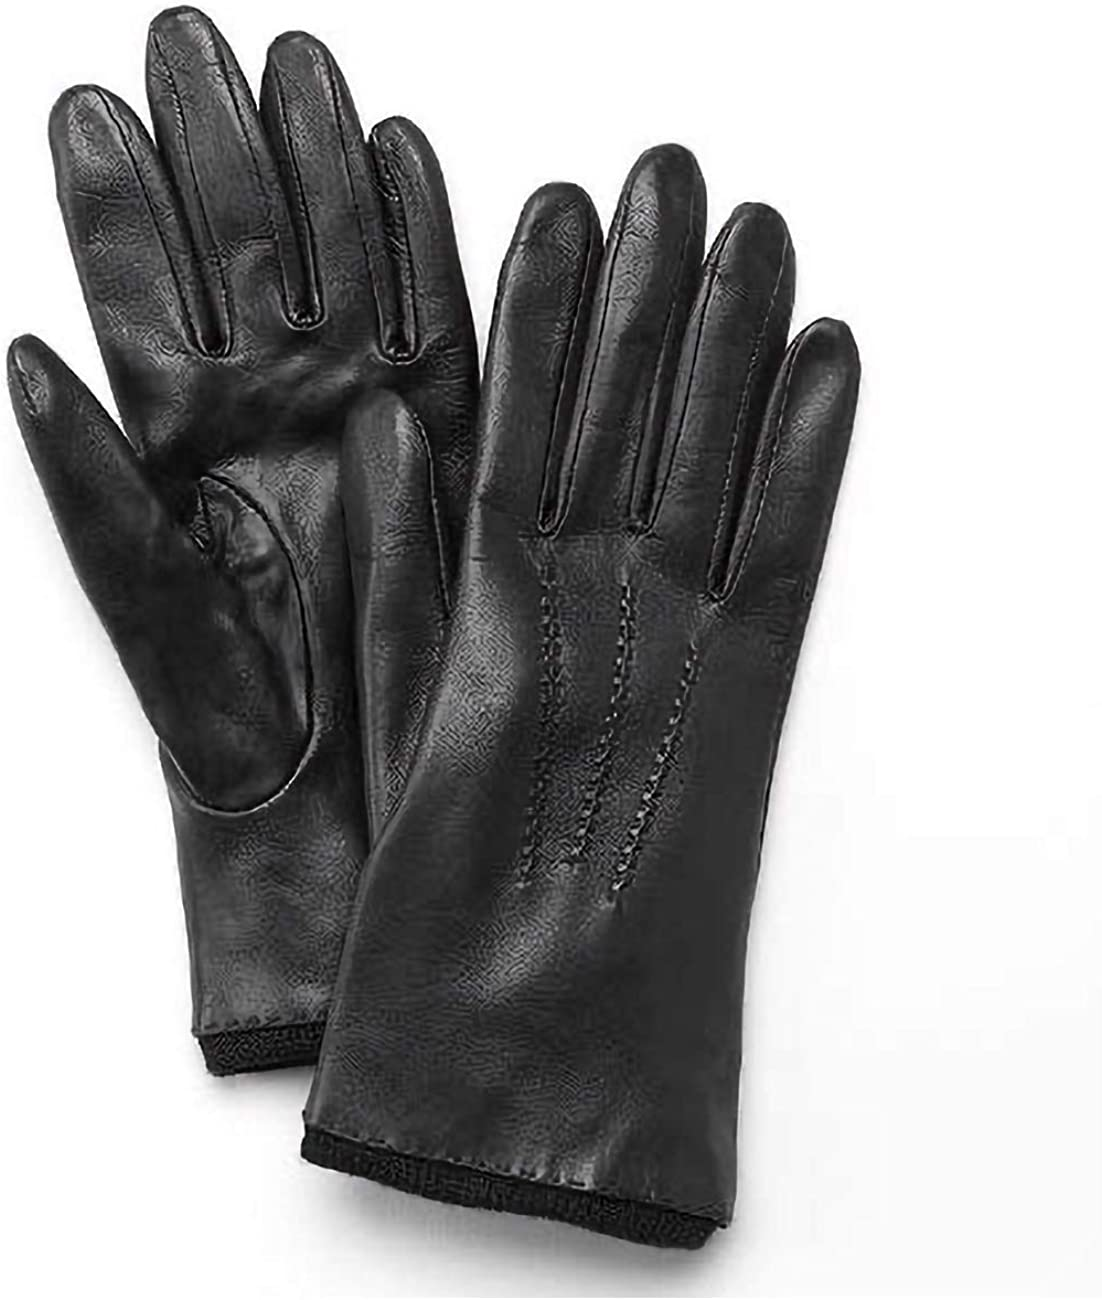 Grandoe Black Stitched Leather Texting Gloves for Women - Size S